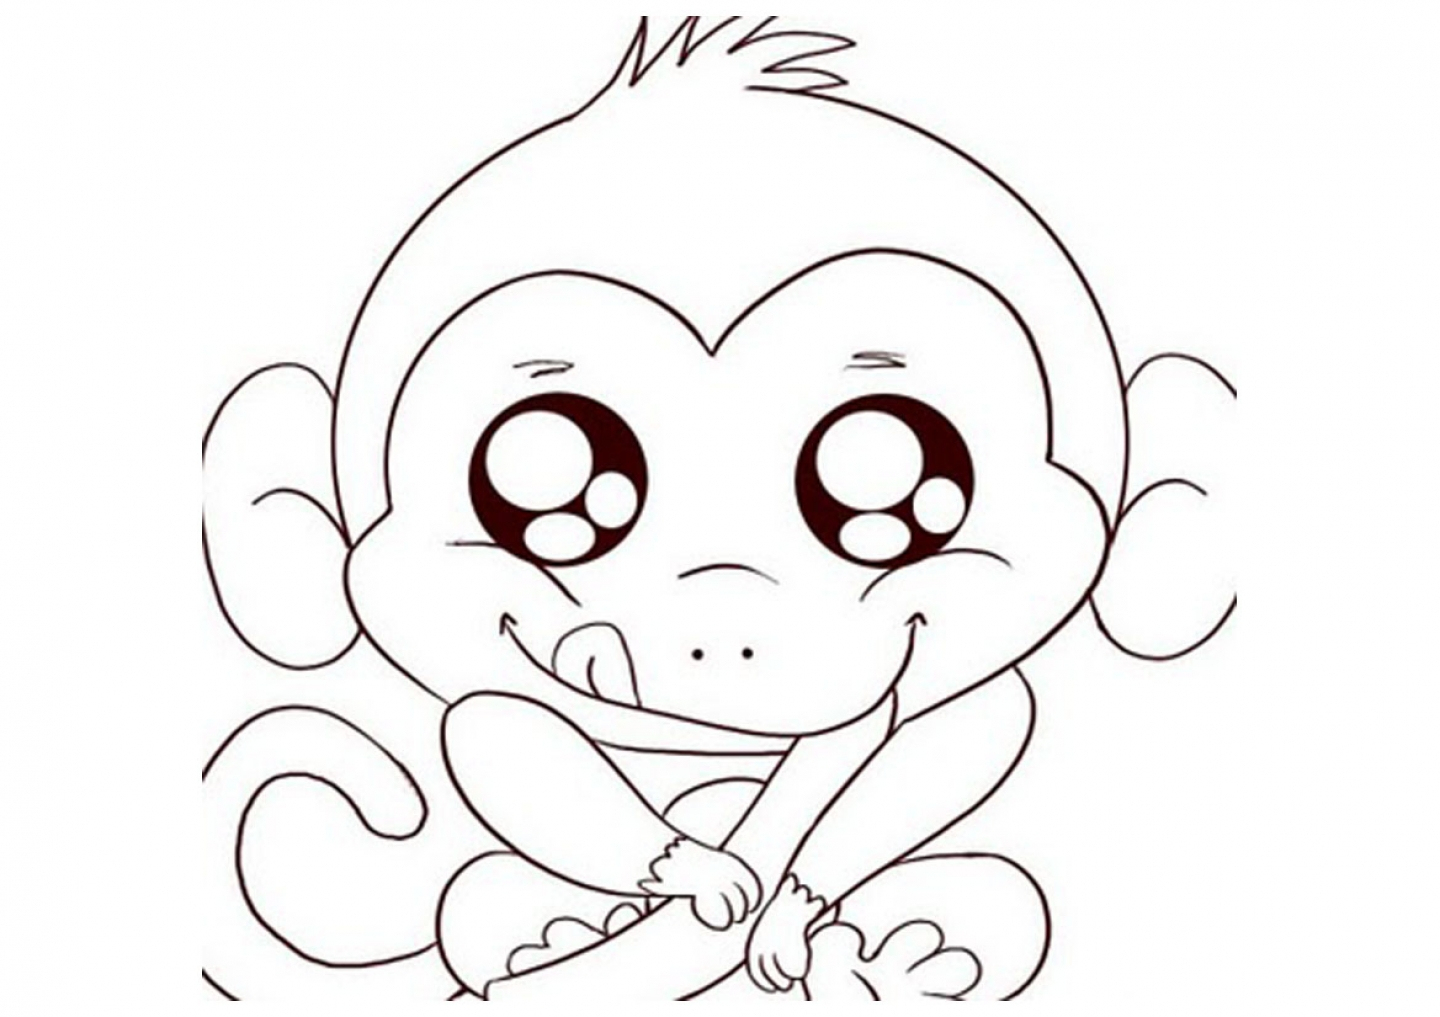 Coloring Pages : Free Printable Monkey Coloring Pages For Kids Pagee - Free Printable Monkey Coloring Sheets